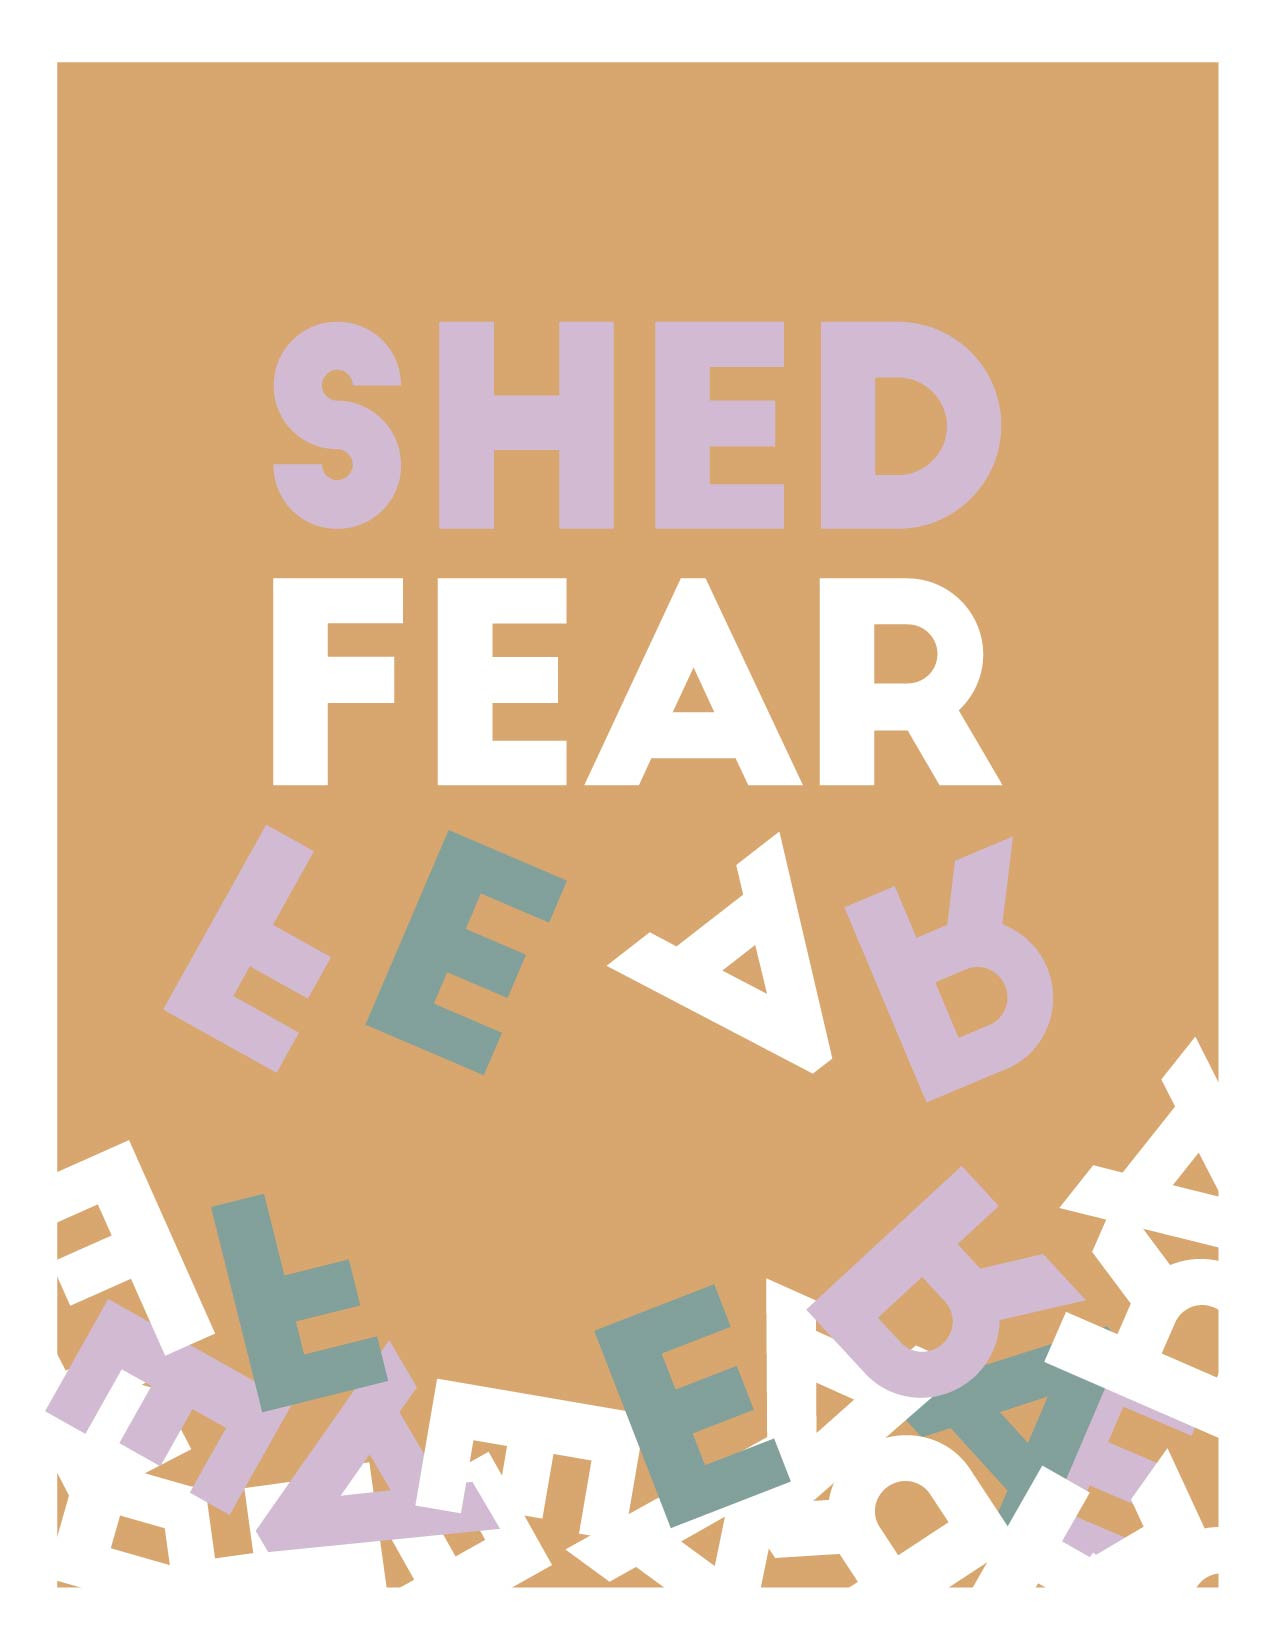 shed fear typographical poster design